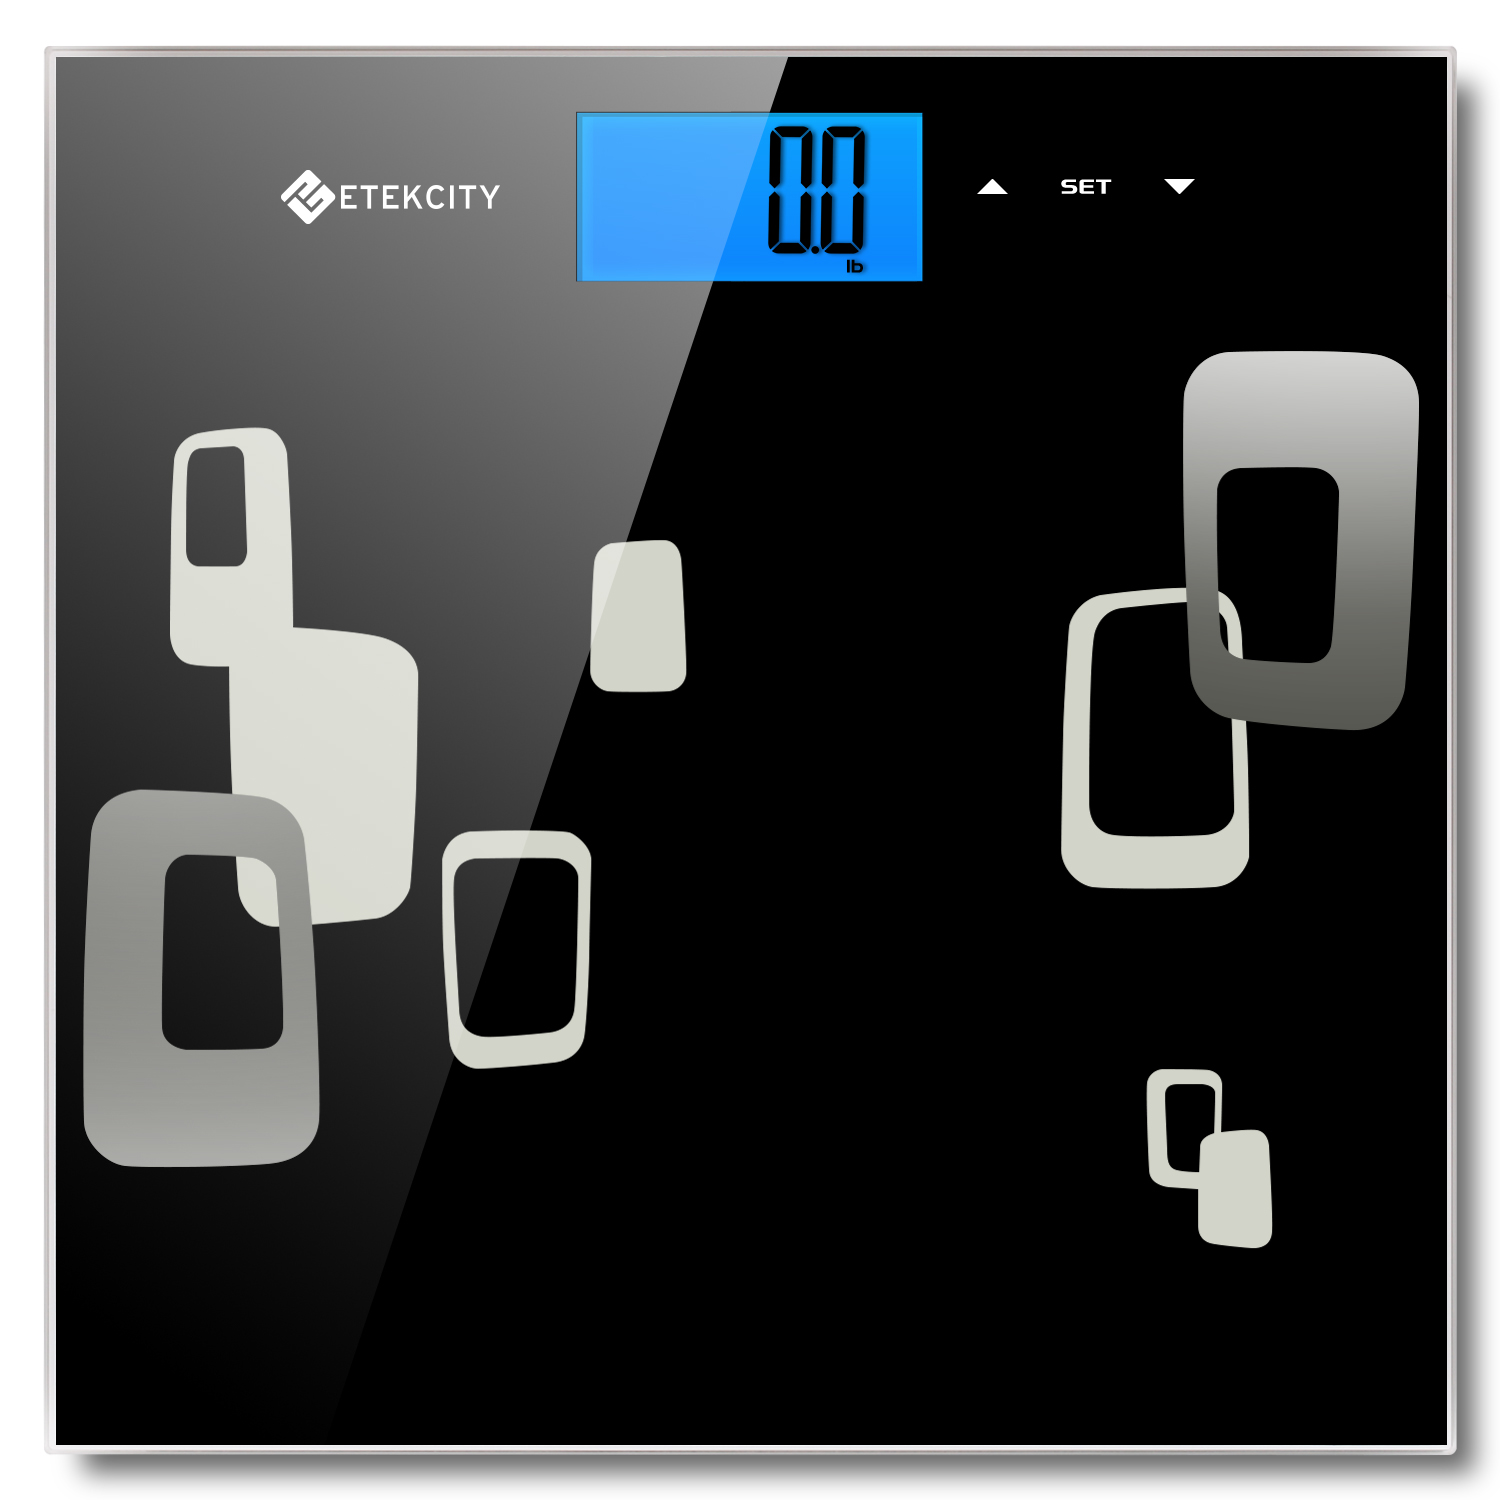 "Etekcity Digital Body Fat Weight BMI Bathroom Scale, Fat, Water, Bones, Muscles, Calorie, and BMI Value, ""Smart Step-on"" Function, Large Backlit Display, 11lb/5kg-400lb/180kg"